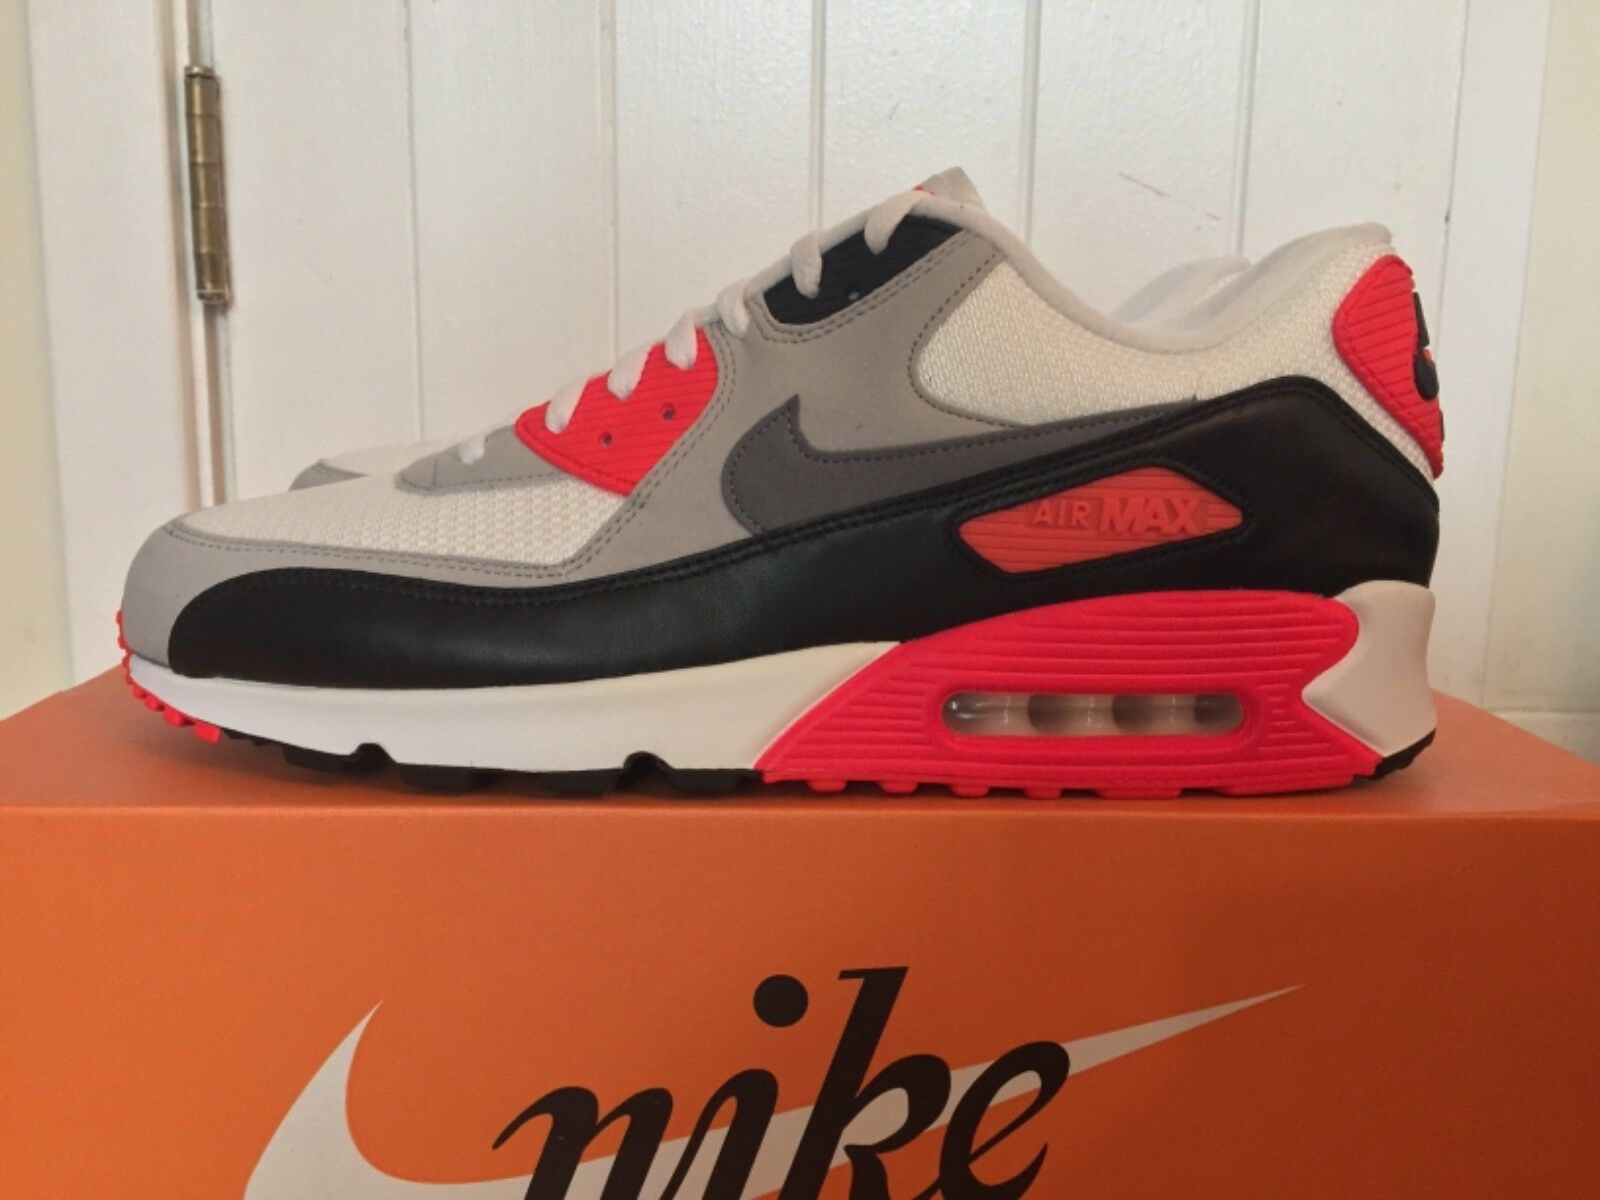 Air Max 90 infrared OG Nike 2015 release size 14 deadstock 100% authentic